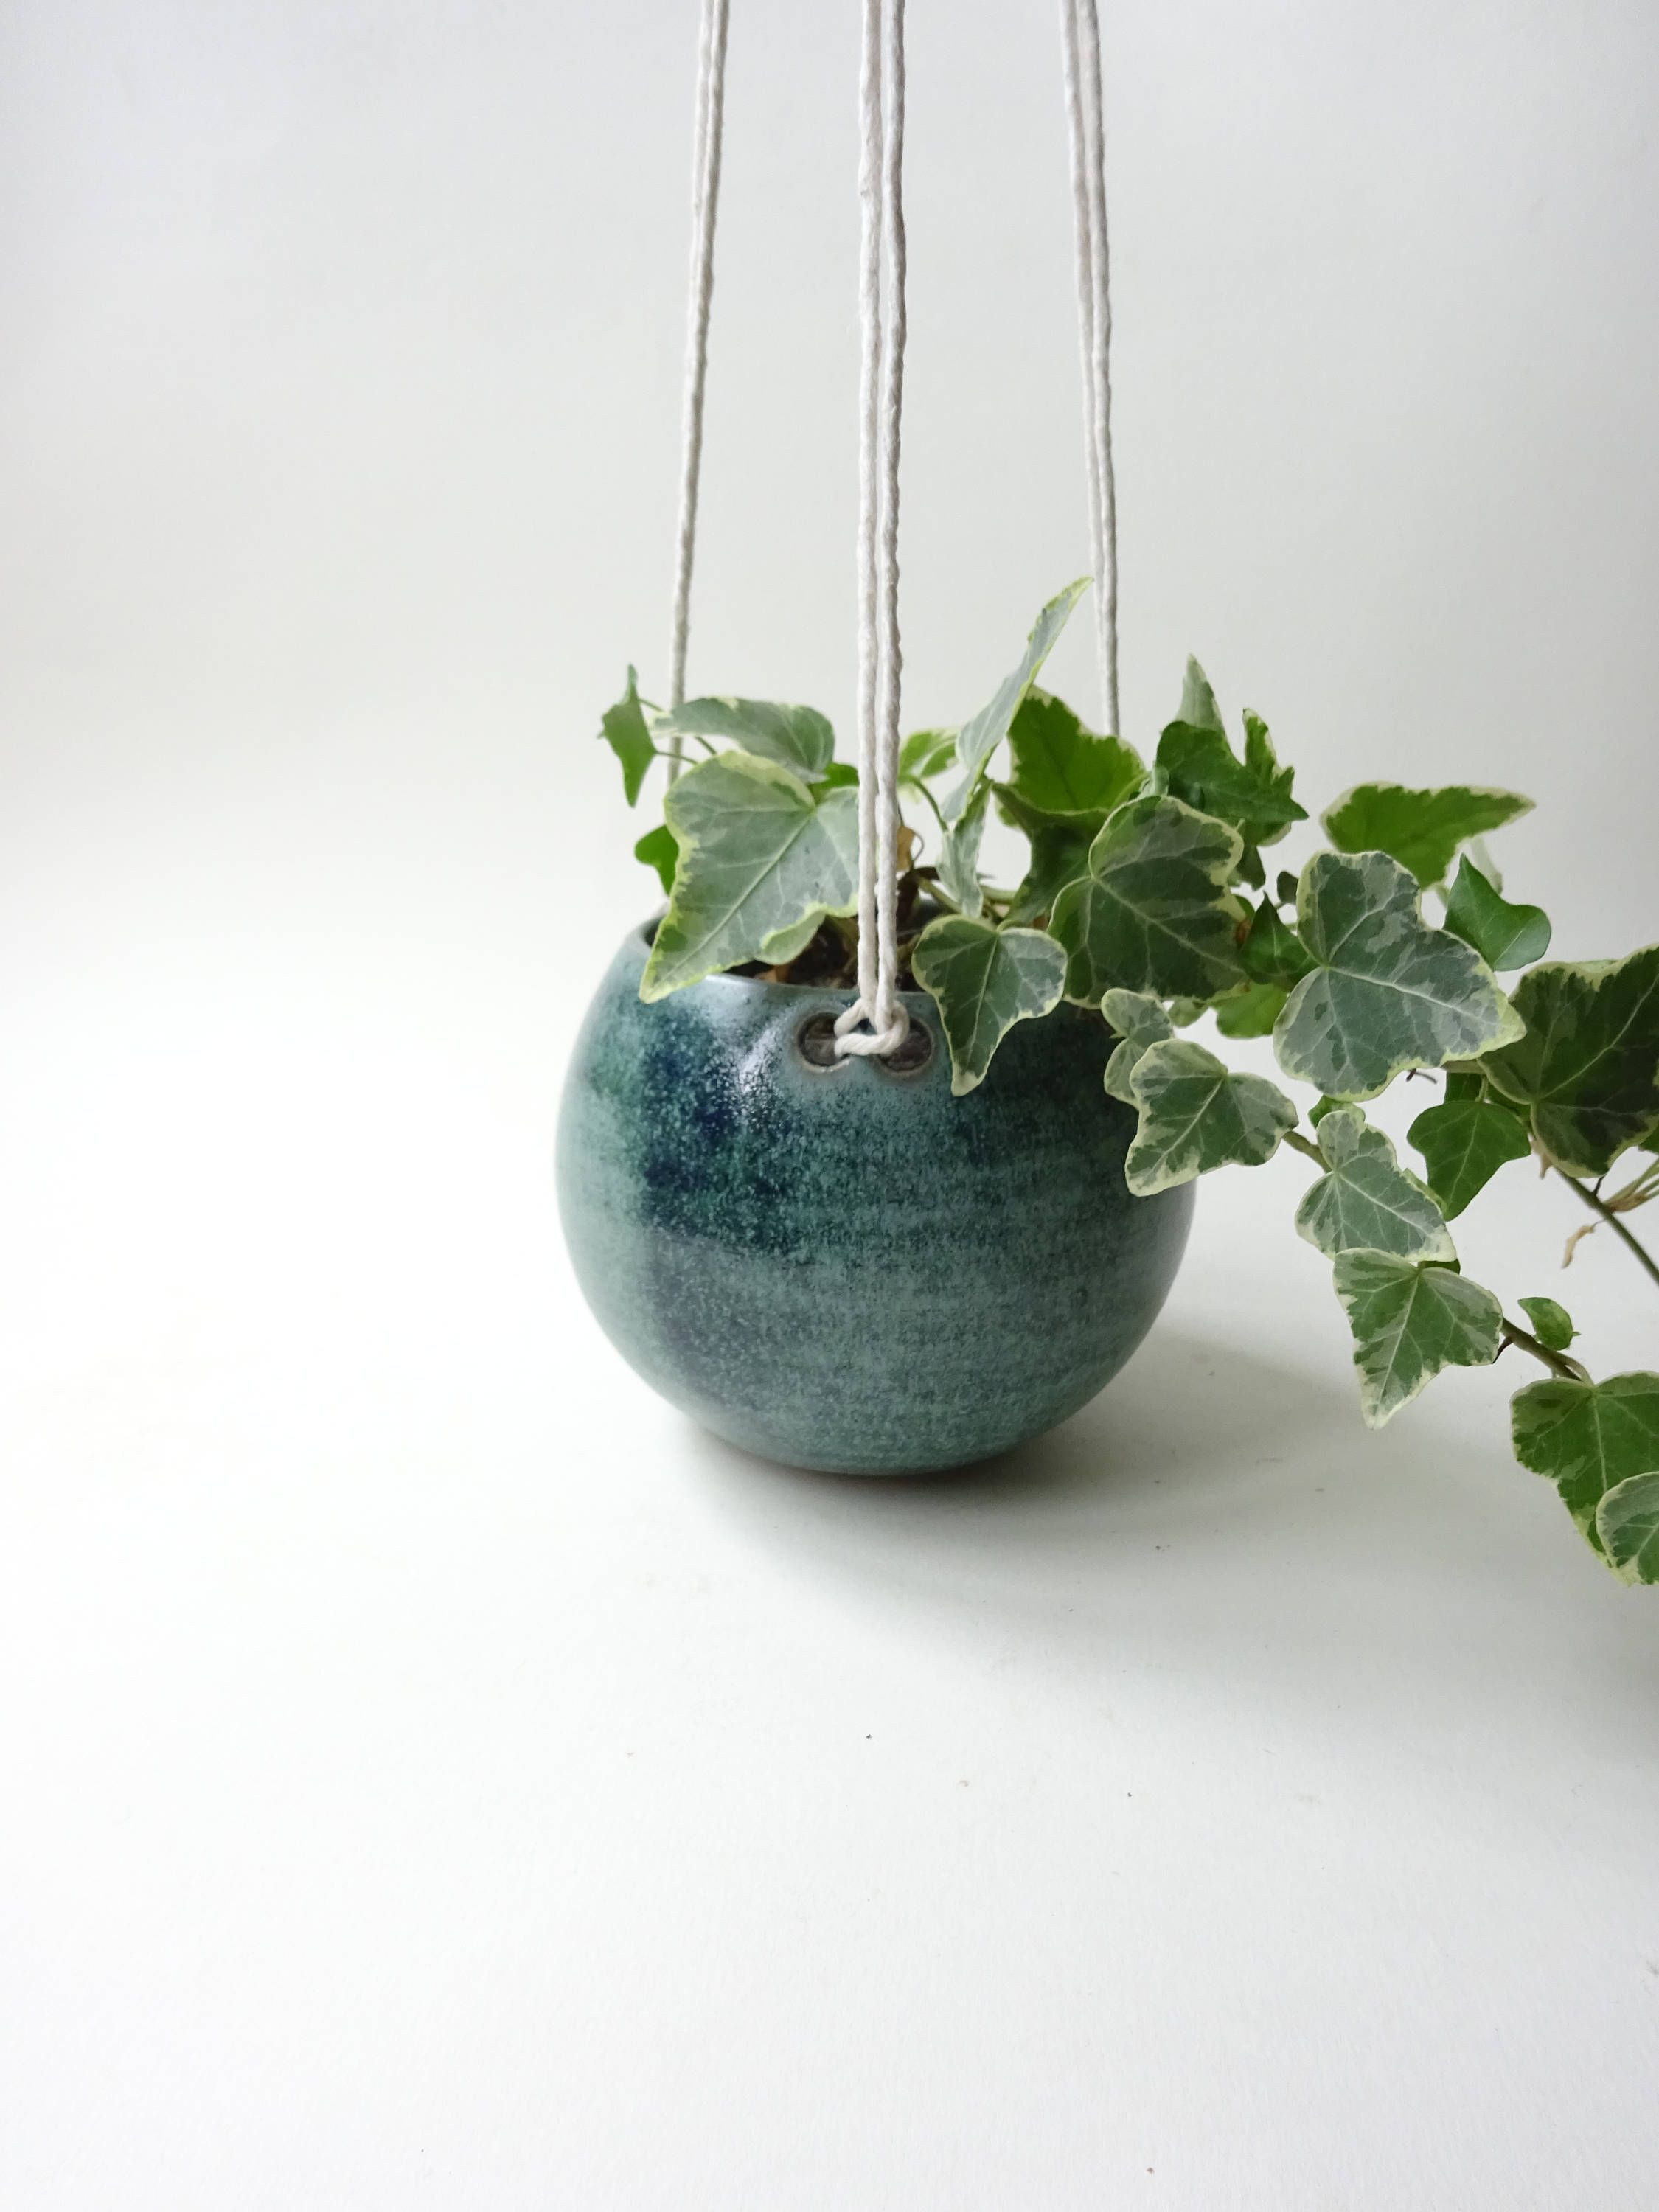 Small hanging planter hanging vase for succulent plants cacti small hanging planter hanging vase for succulent plants cacti and small plants reviewsmspy